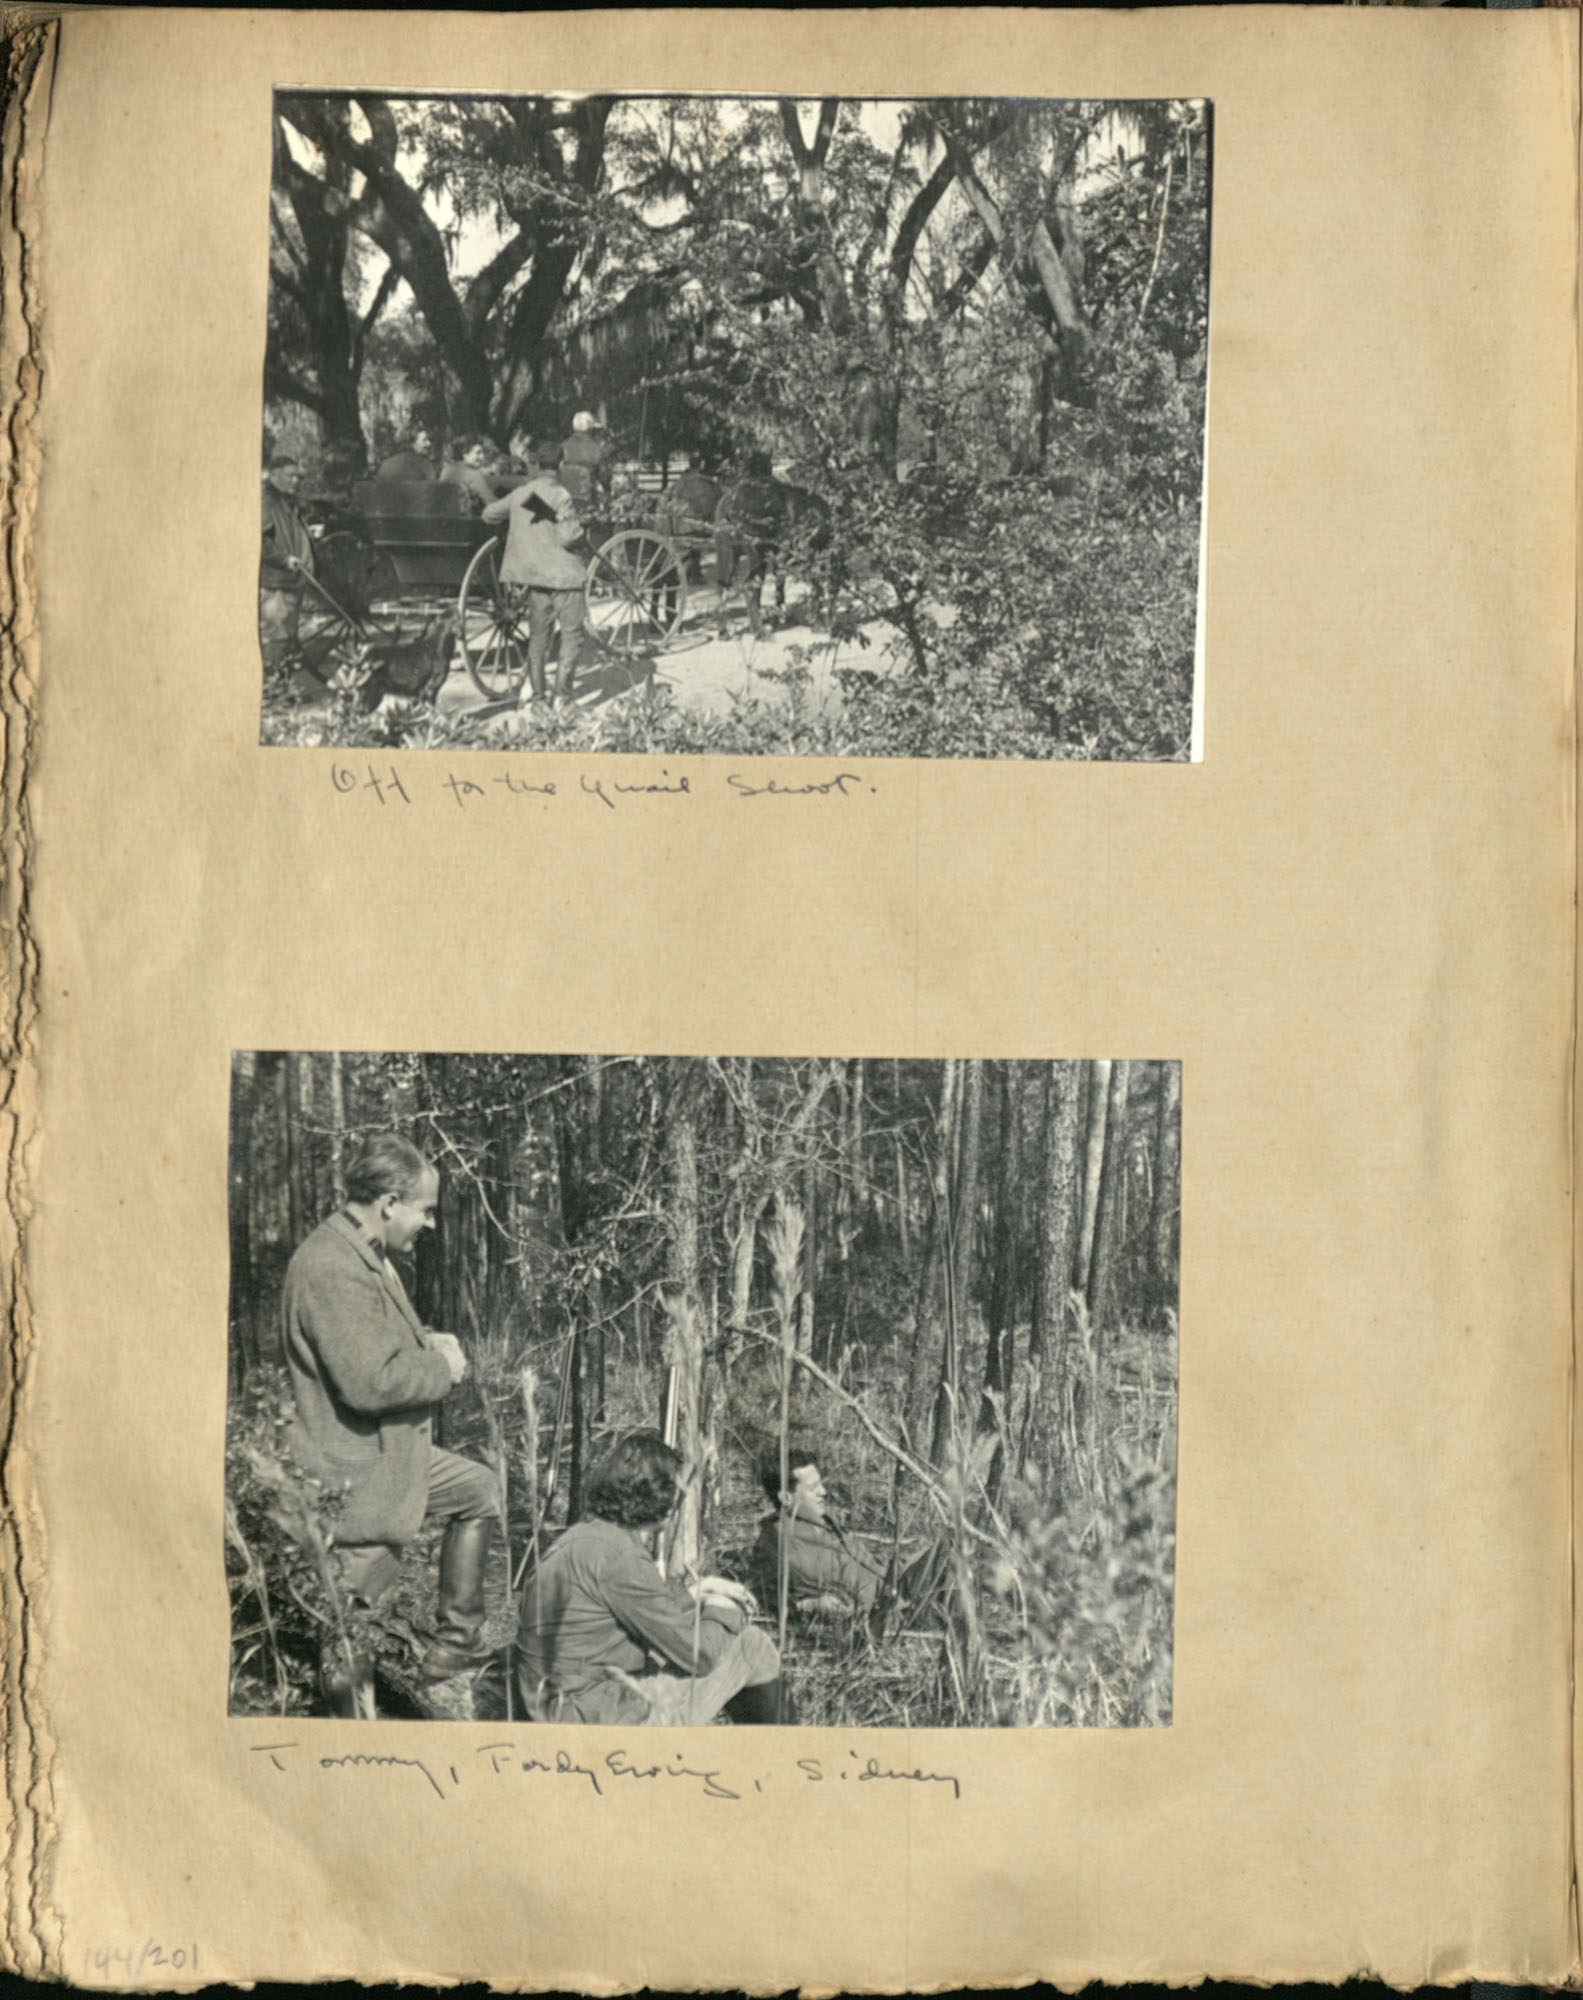 Early Medway and travels album, 1929-1937, page 144